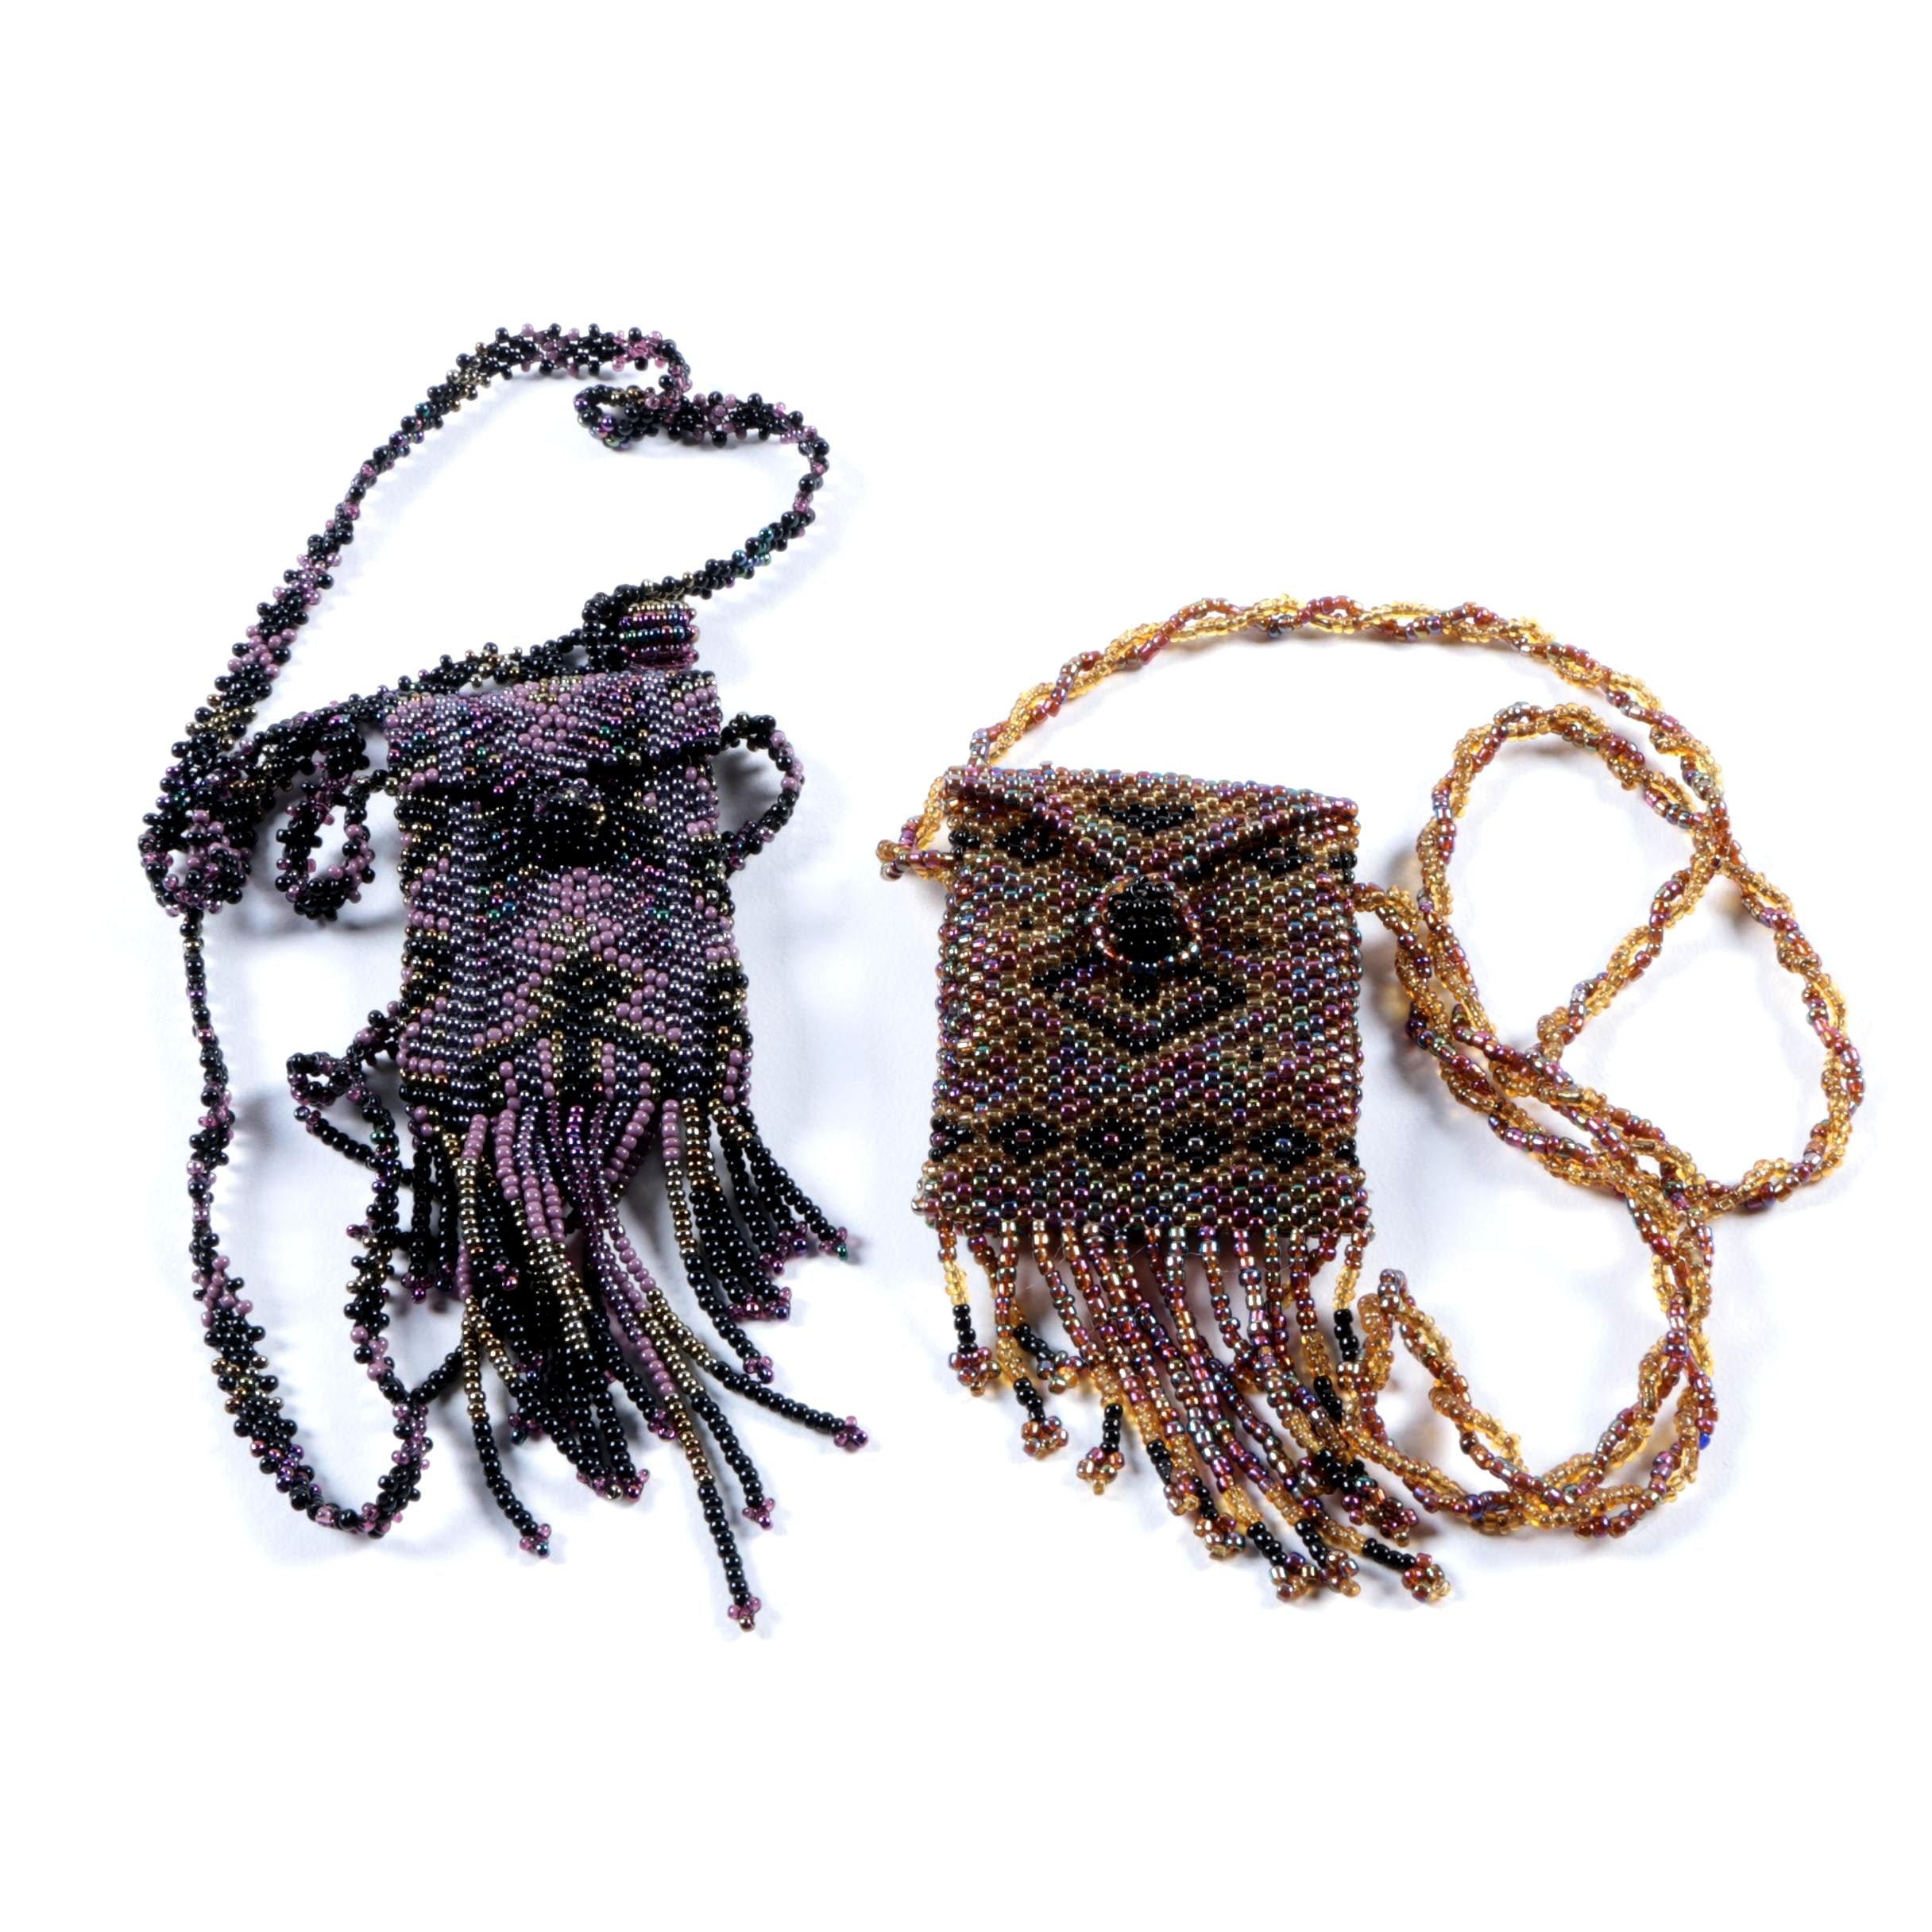 Pair of Hand Beaded Pouch Necklaces